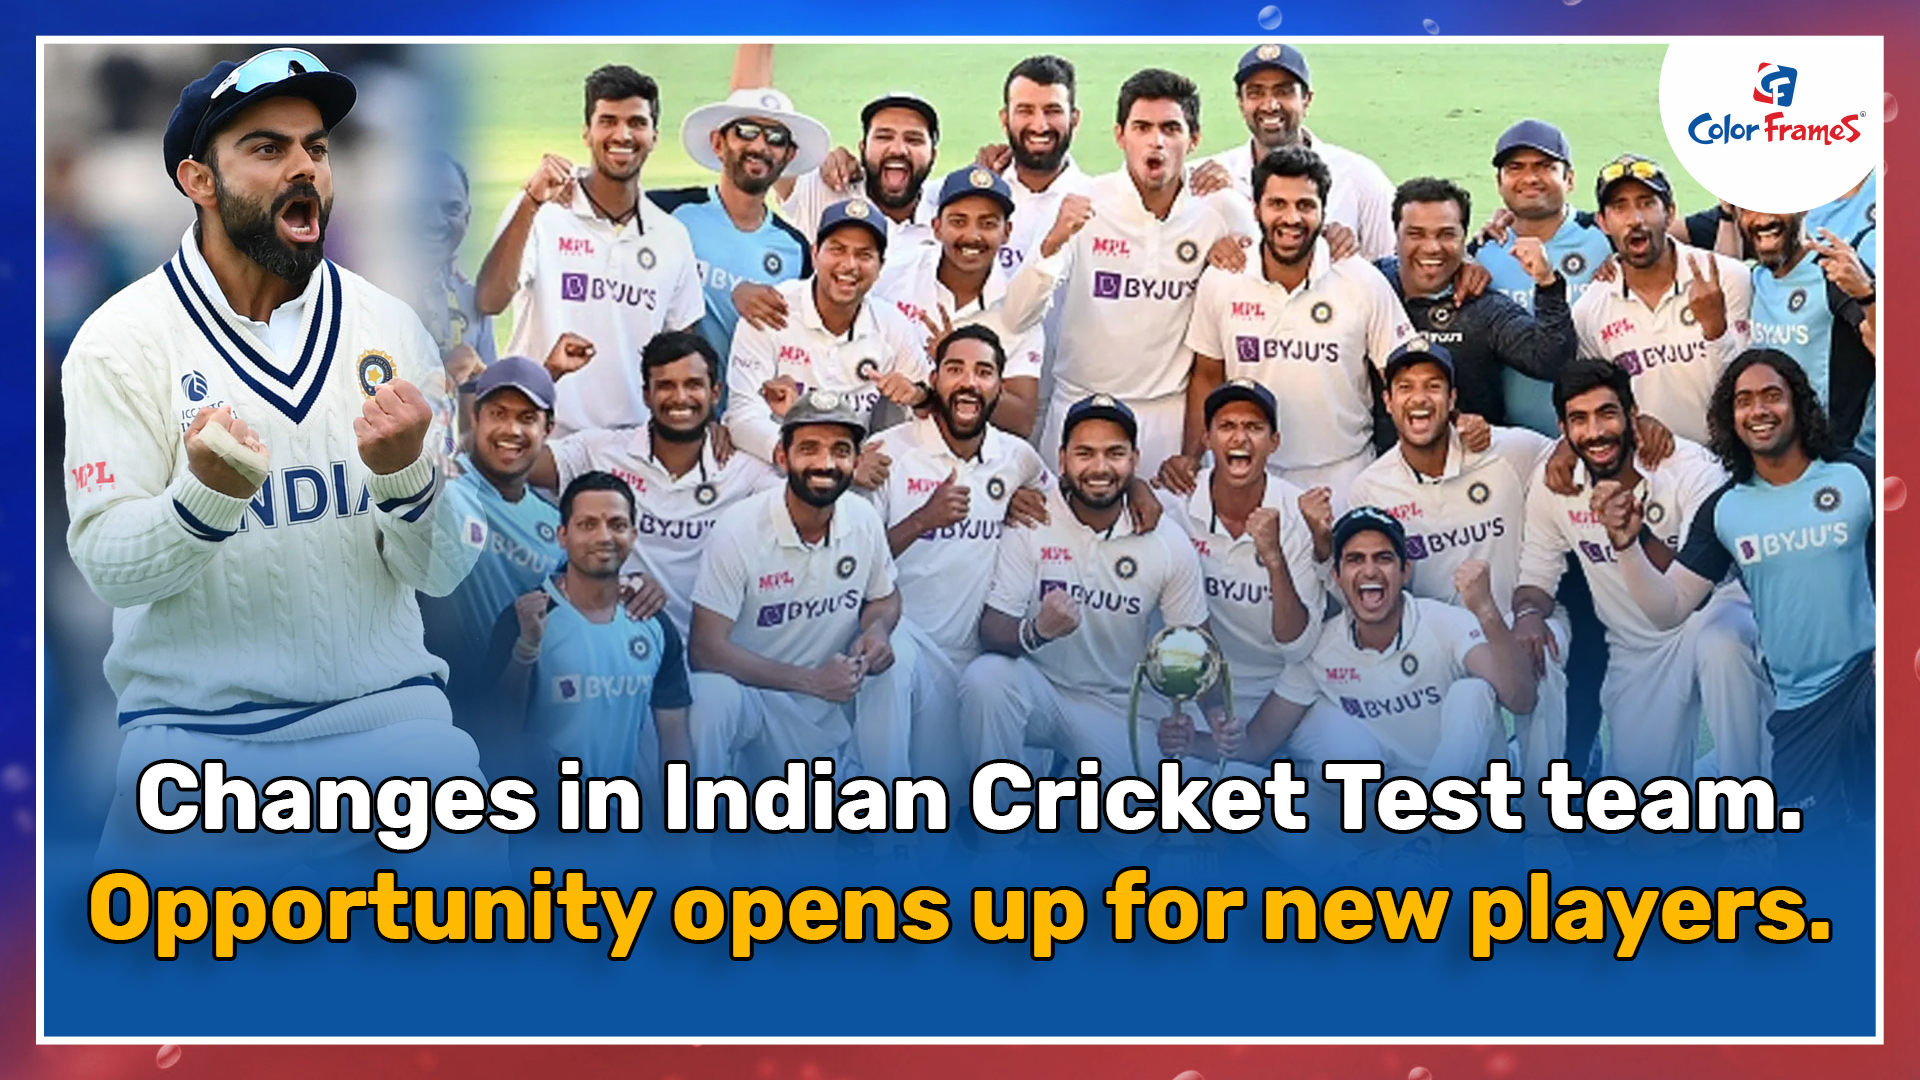 Changes in Indian Cricket Test team. Opportunity opens up for new players.